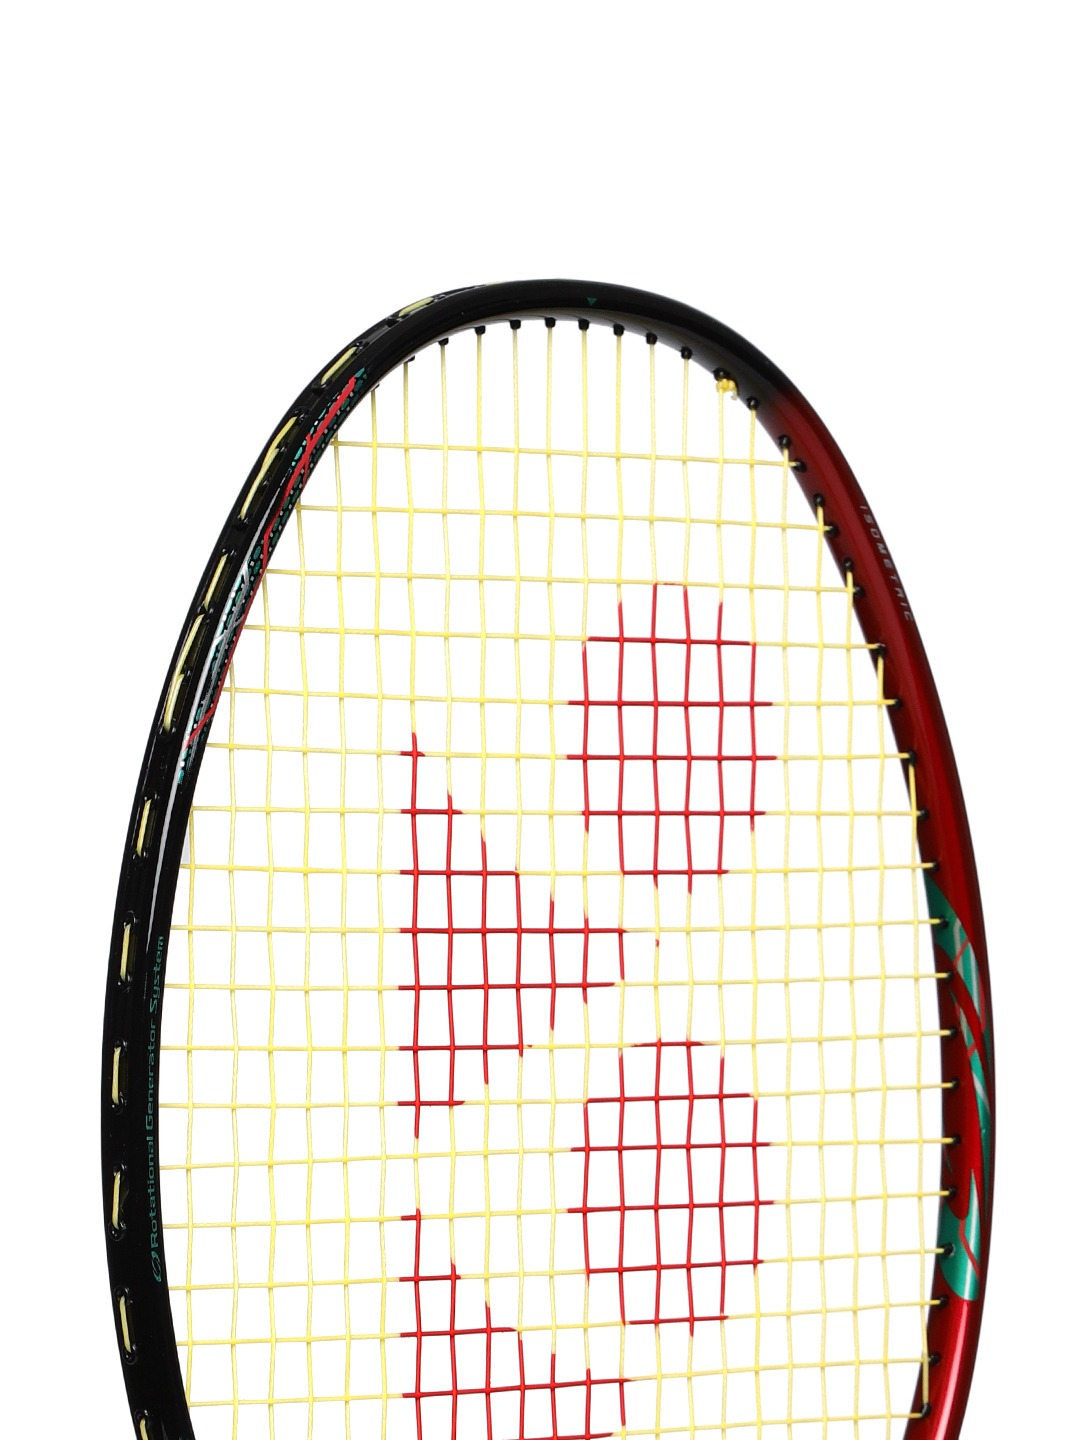 Yonex Astrox38D Badminton Racquet Black/Red/Green